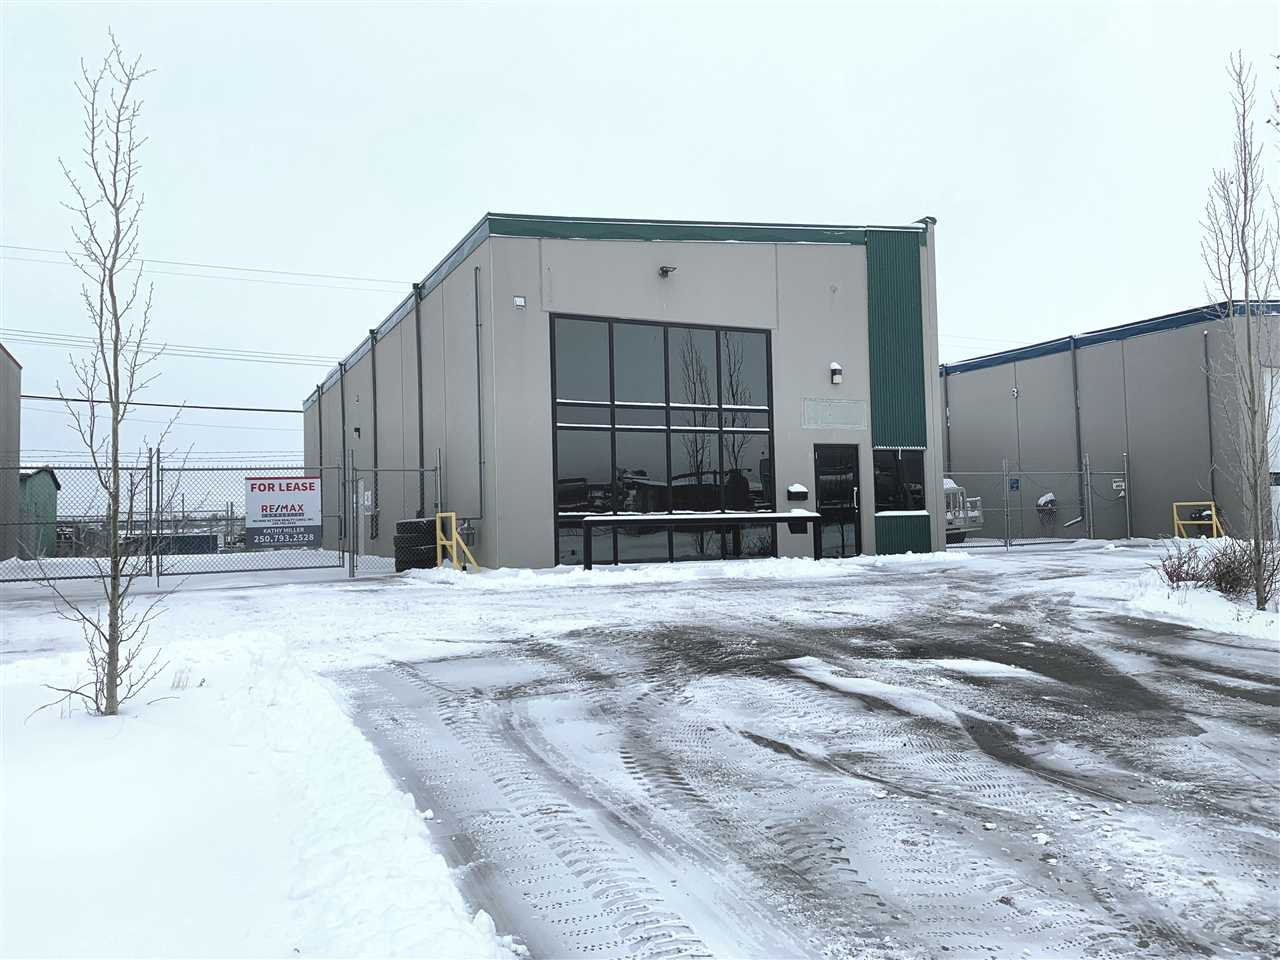 Main Photo: 10204 CREE Road in Fort St. John: Fort St. John - City SW Industrial for lease (Fort St. John (Zone 60))  : MLS®# C8035086